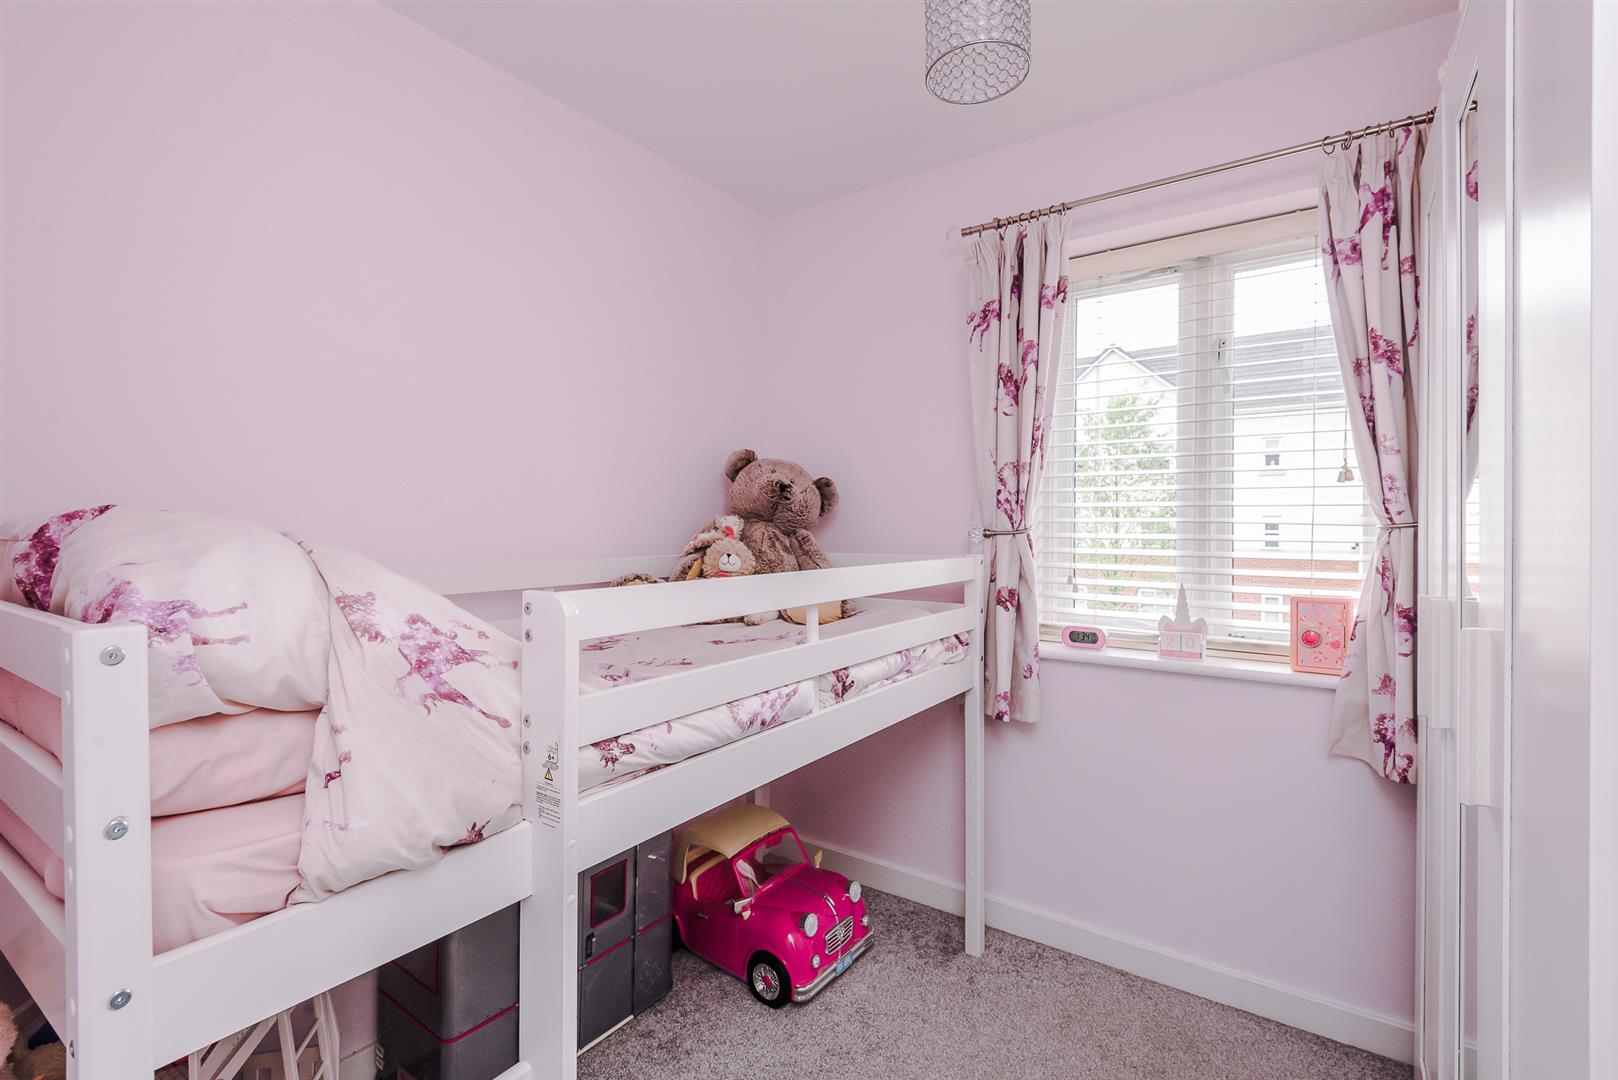 2 Bedroom Terraced House Sale Agreed Image 8